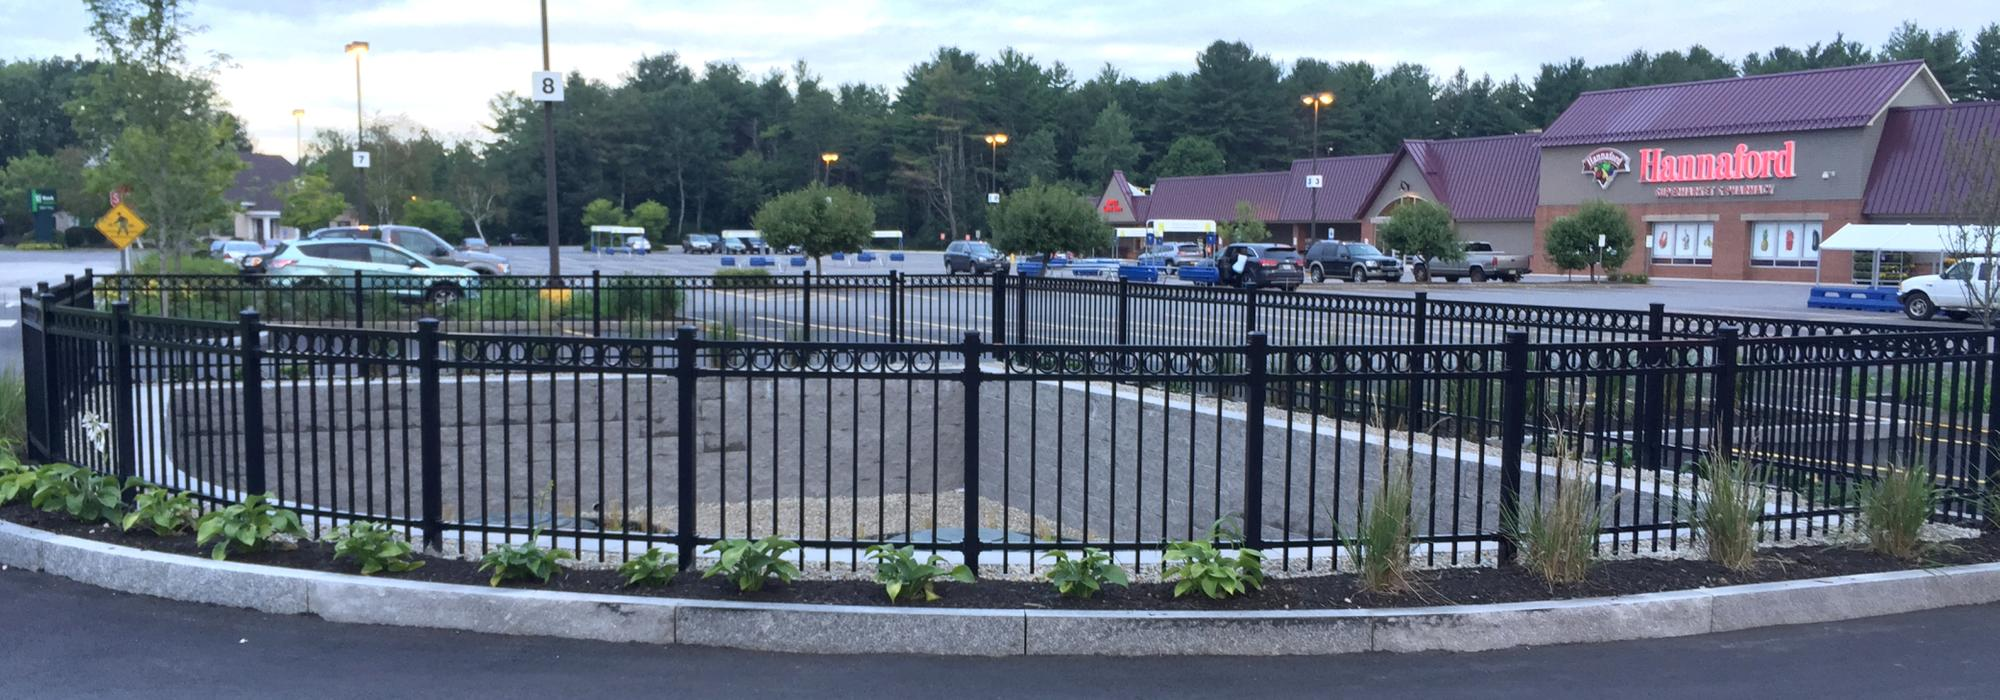 Commercial Ornamental Fences